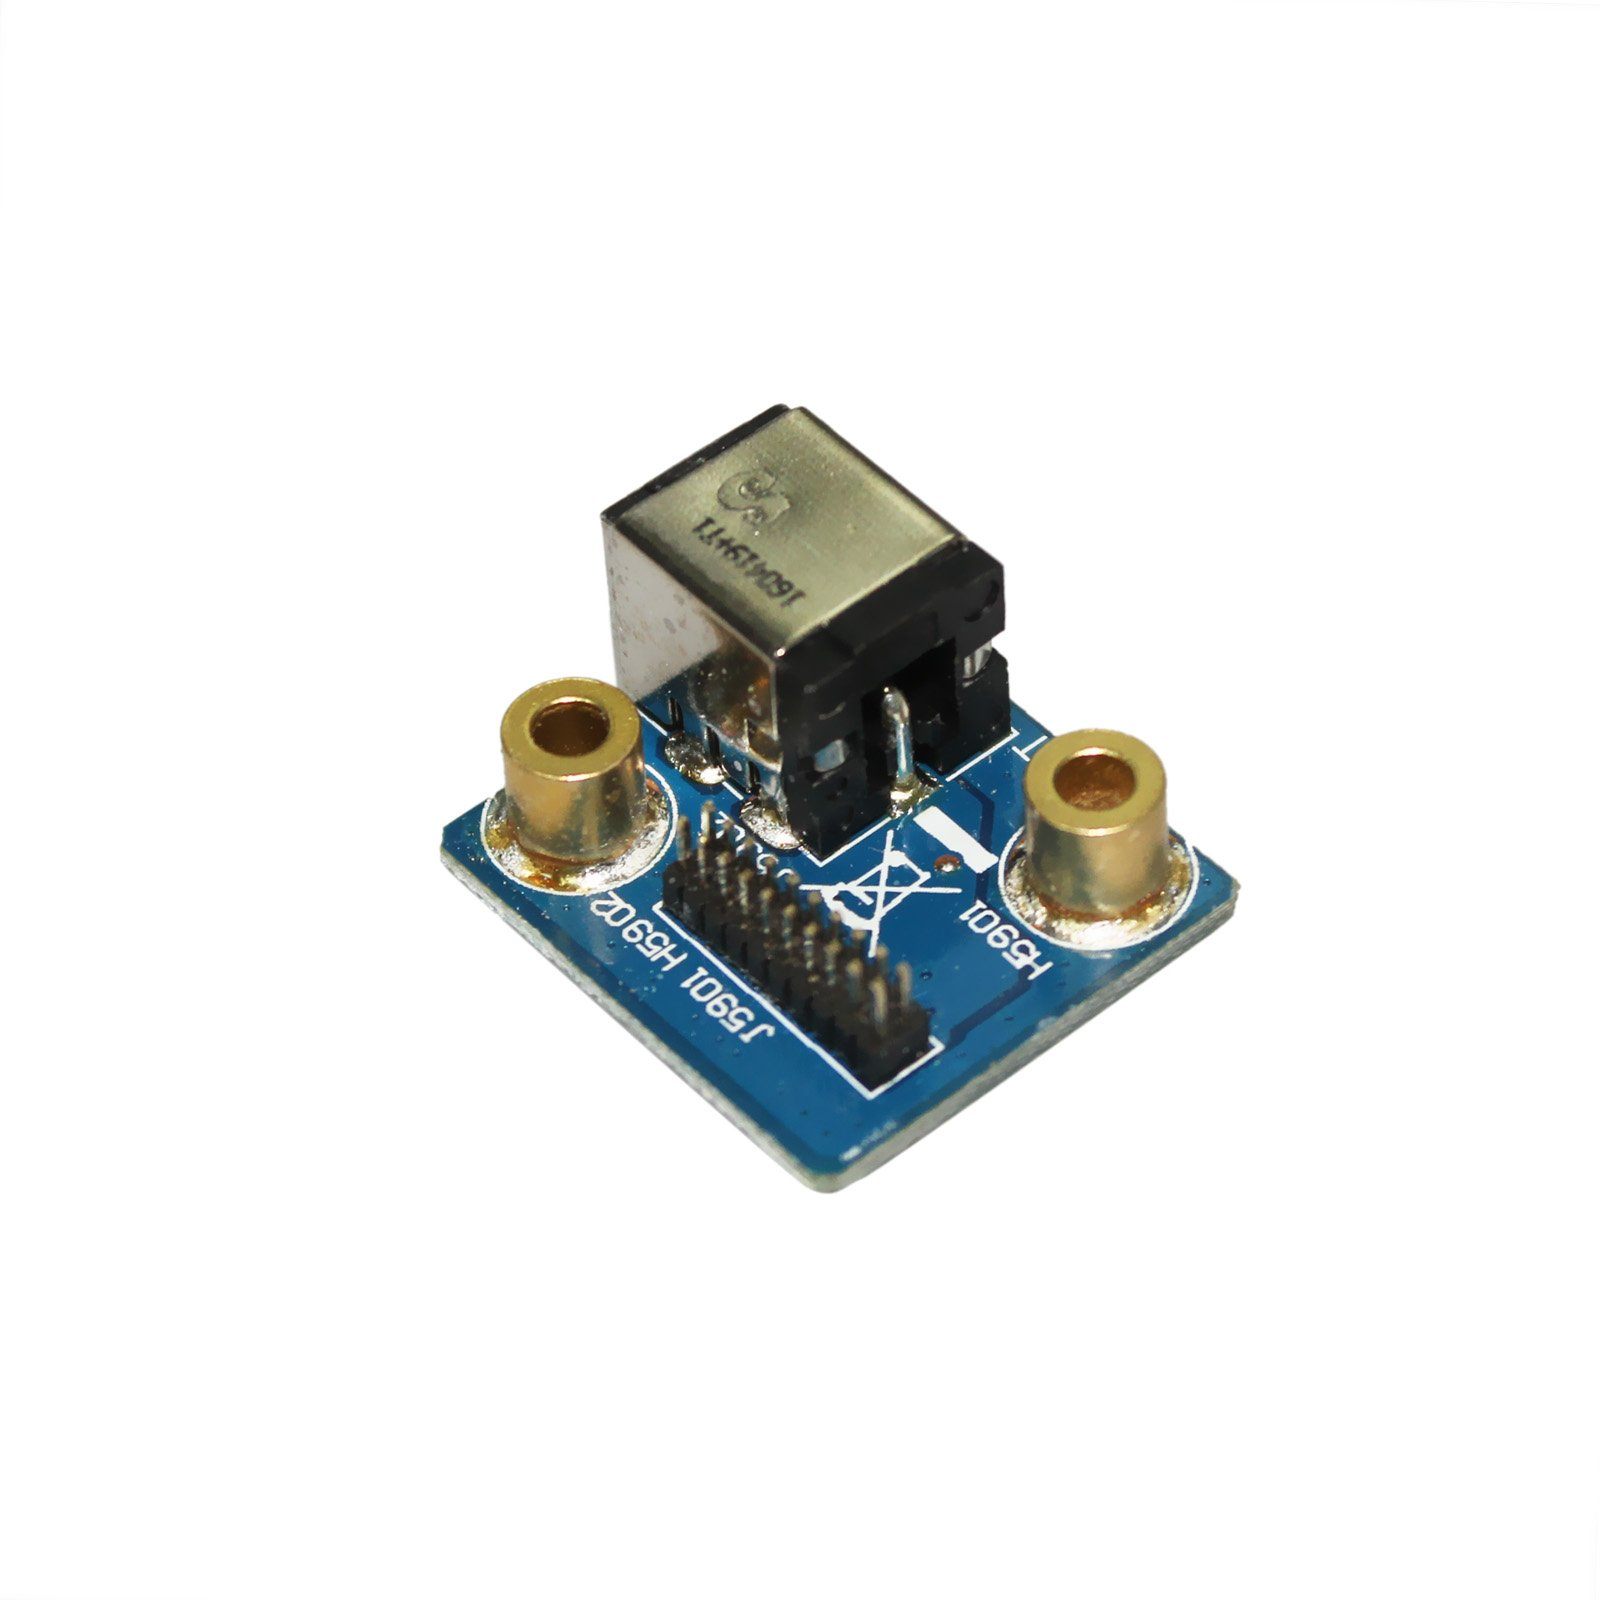 GinTai DC Power Jack Board Charging Port for Asus RoG G75 G75V G75VX G75VW G75VM G75VX-BHI7N1 69N0NQC10C01 by GinTai (Image #2)